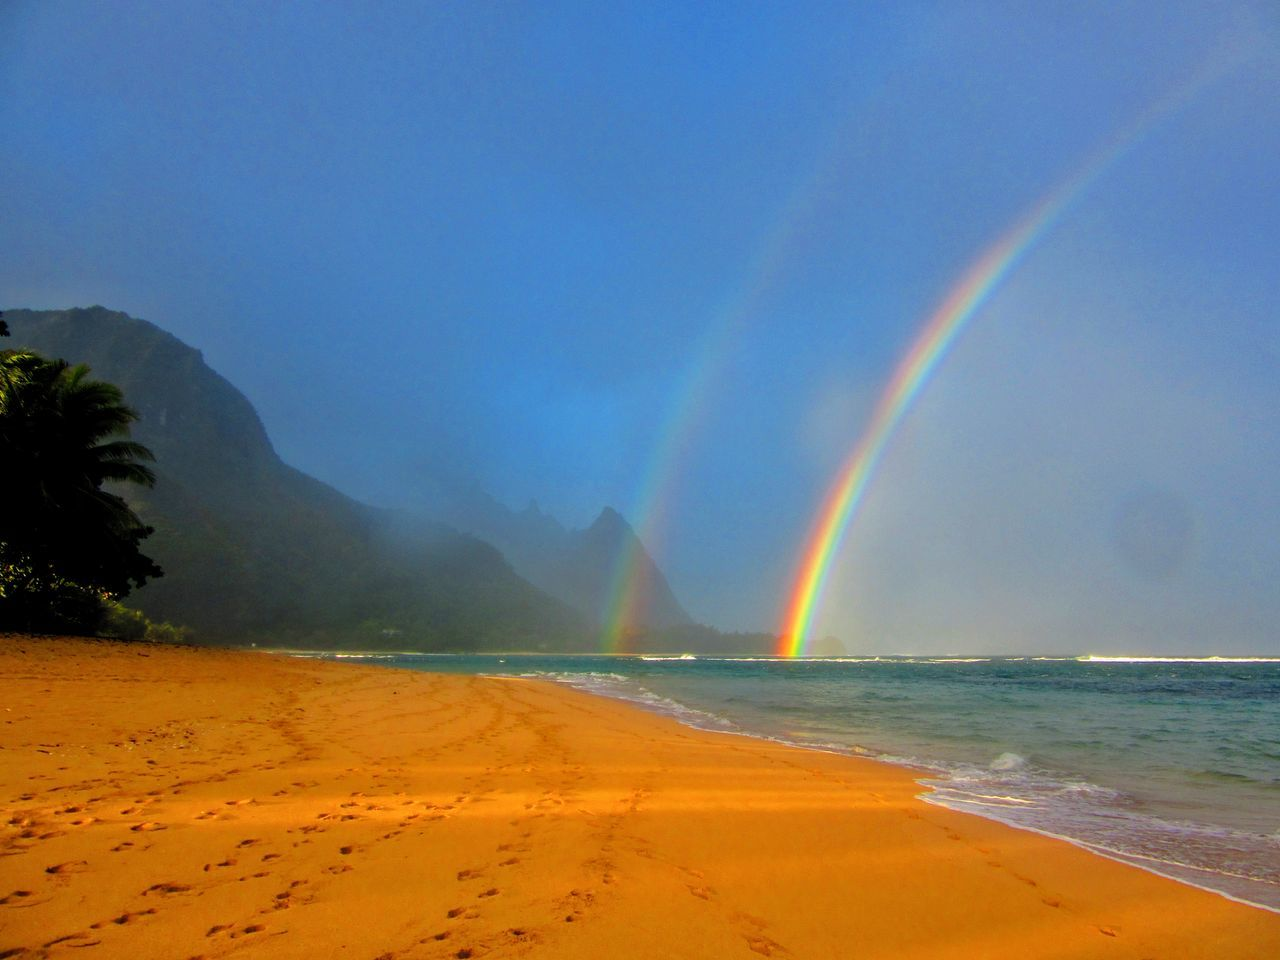 Last Christmas in hawaii Blue Sand Beach Accidents And Disasters Beauty In Nature Travel Destinations Outdoors Scenics Heat - Temperature Landscape Tranquility Nature Water Sky No People Day Kauai Kauai Rainbow Kauai♡ Traveling Home For The Holidays Finding New Frontiers